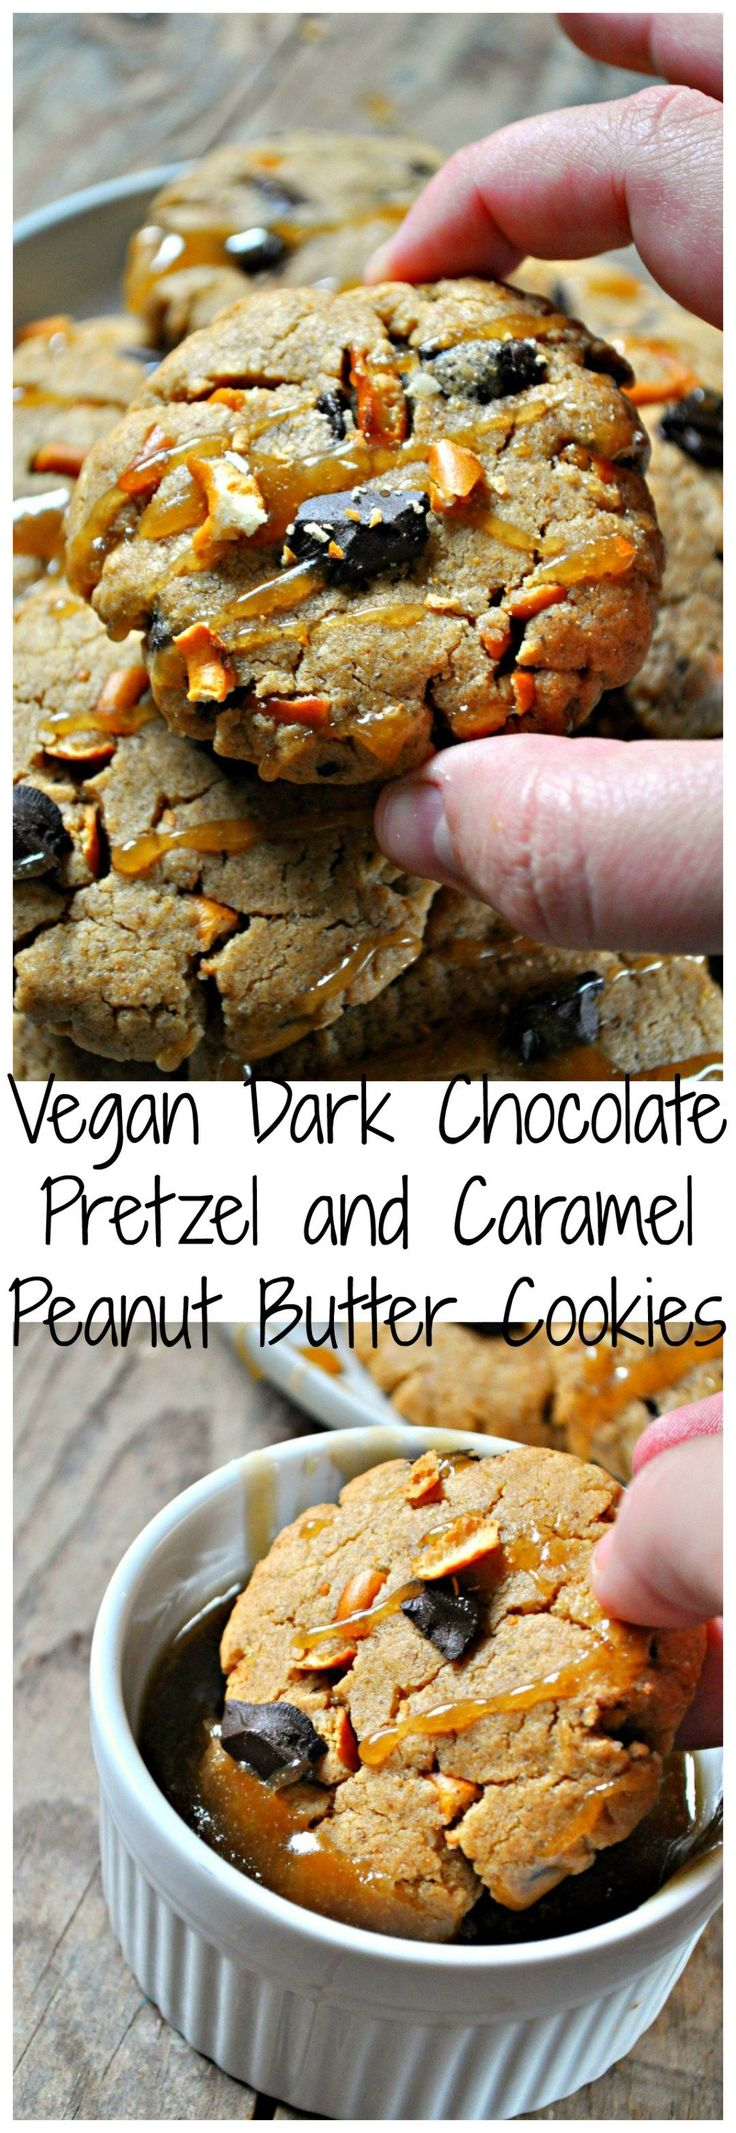 These vegan peanut butter cookies are light and fluffy studded with dark chocolate chunks and pretzels. Then drizzle with or dip into super easy vegan caramel!